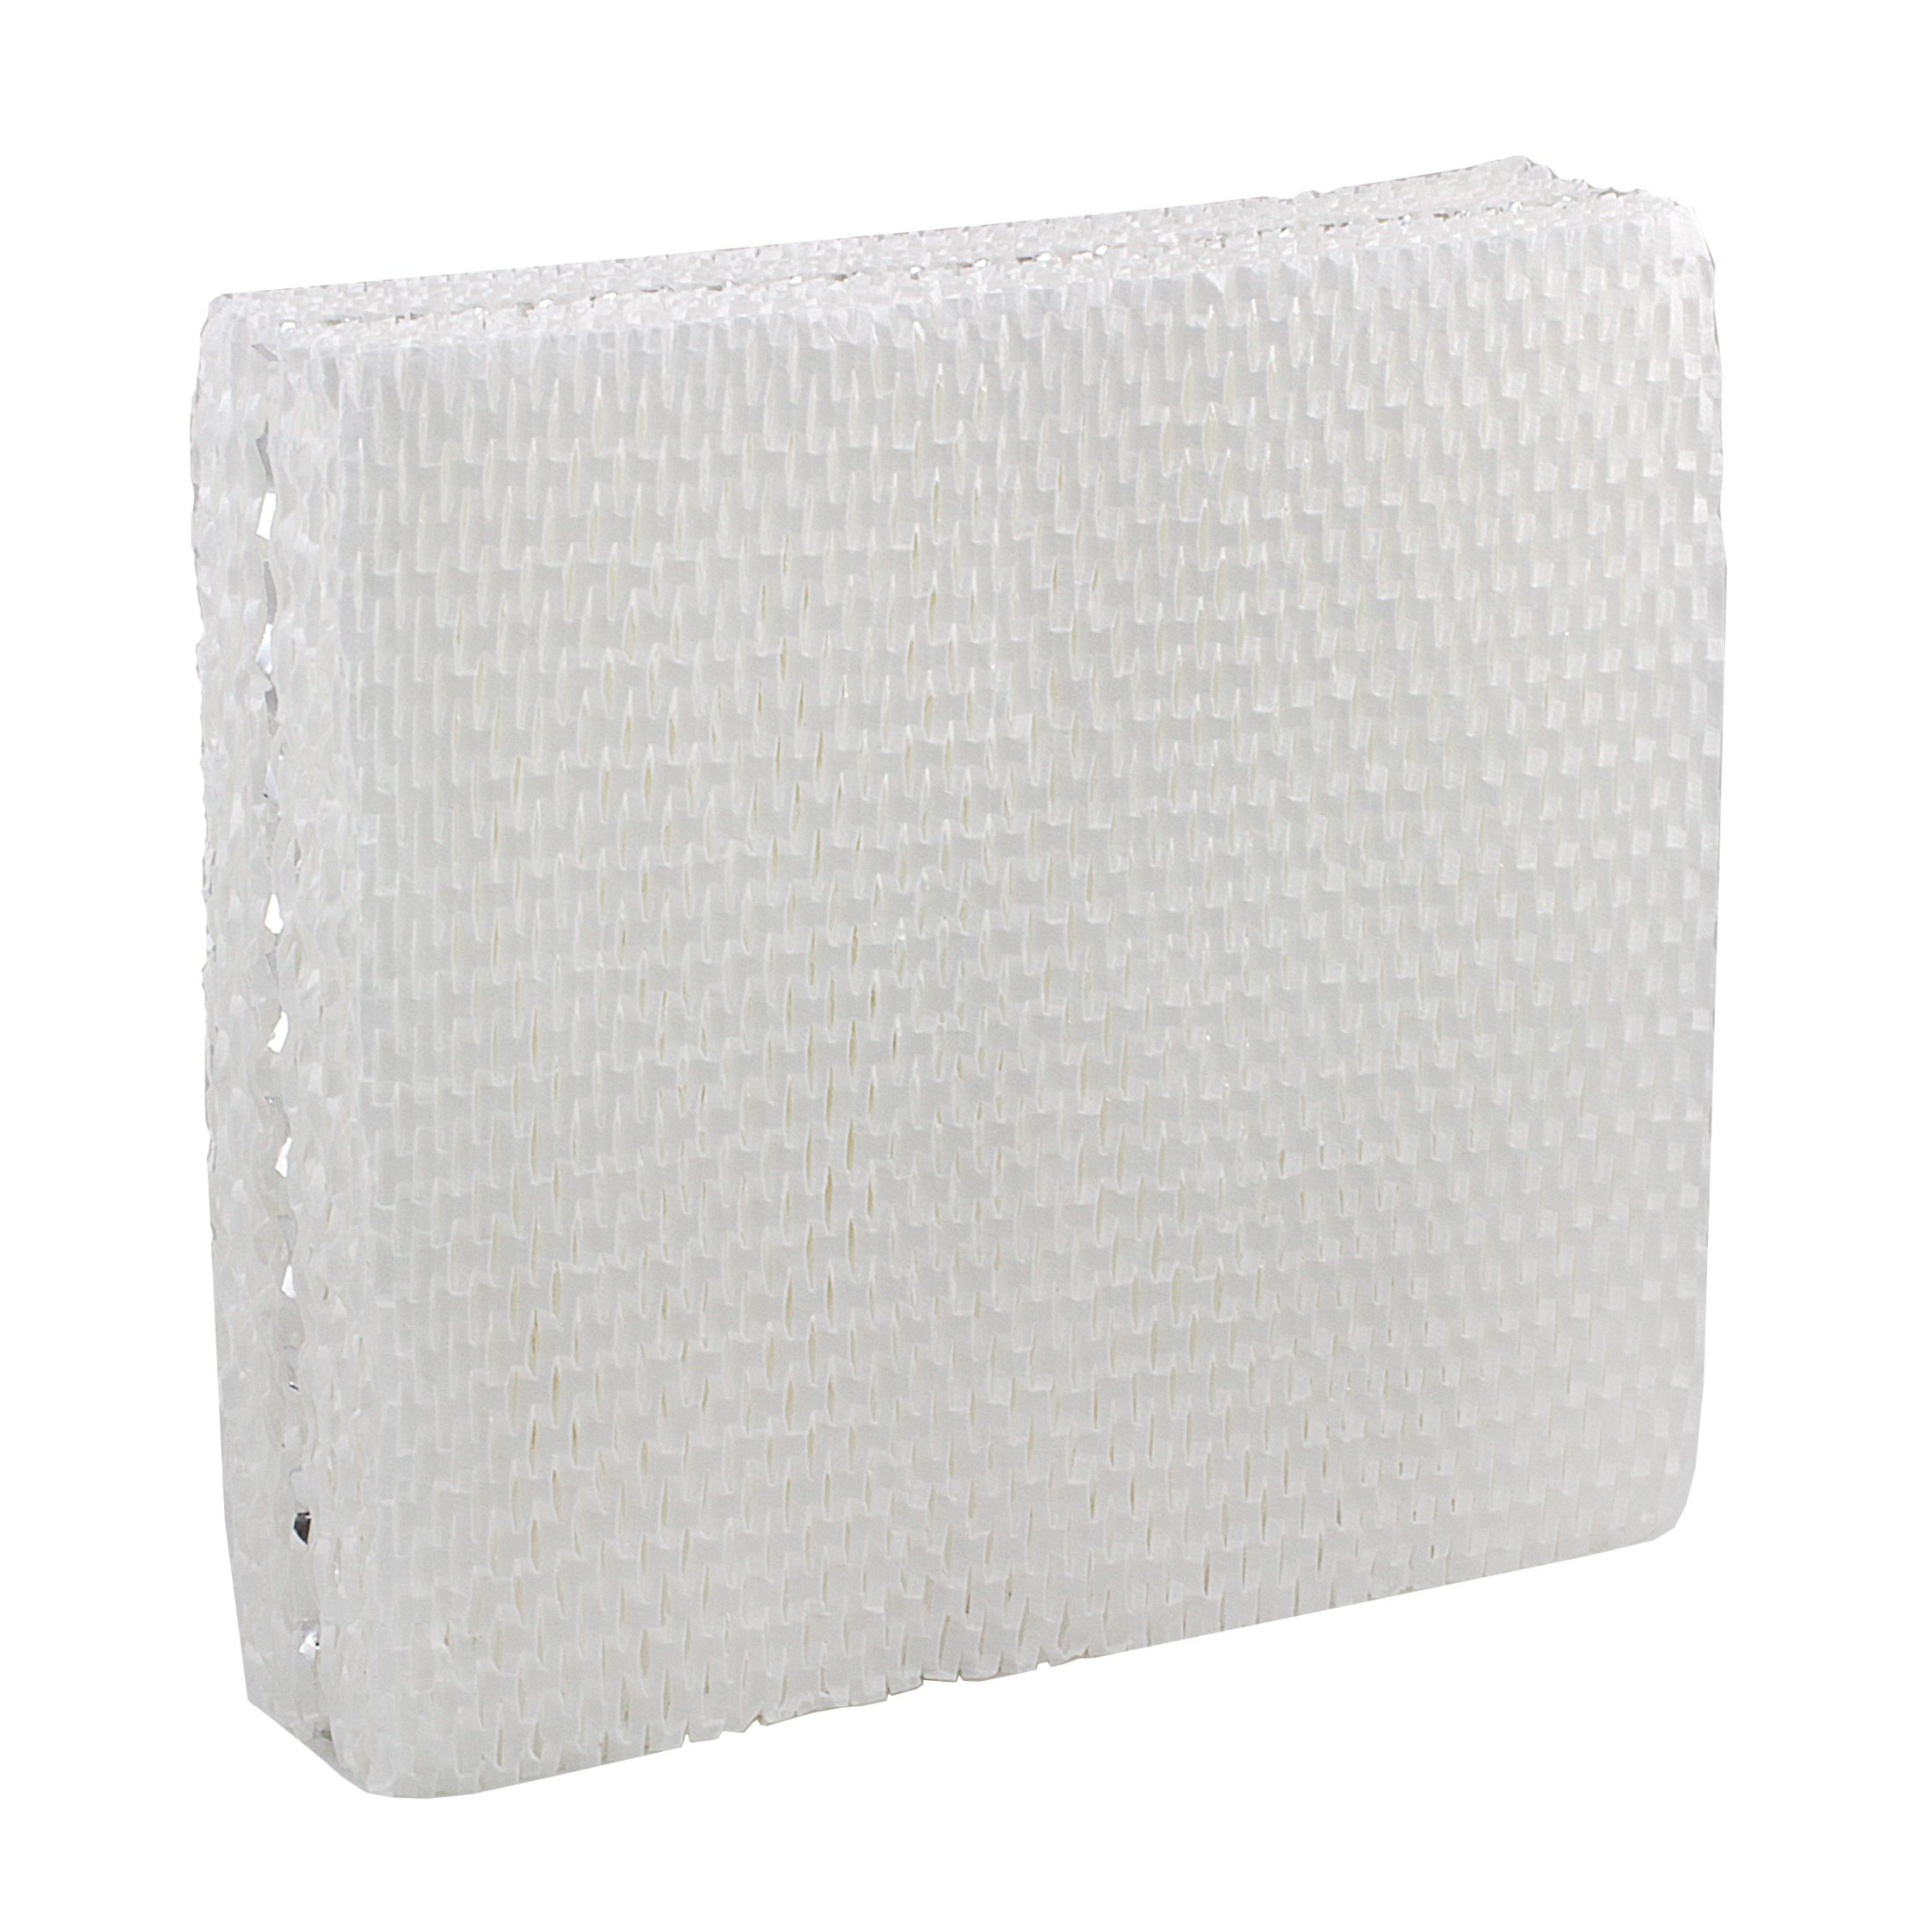 FilterBuy Replacement Humidifier Filter Compatible with Lasko THF15, Duracraft AC-809 & AC-815, Sears Kenmore 14809. Designed by in the USA. by FilterBuy (Image #2)